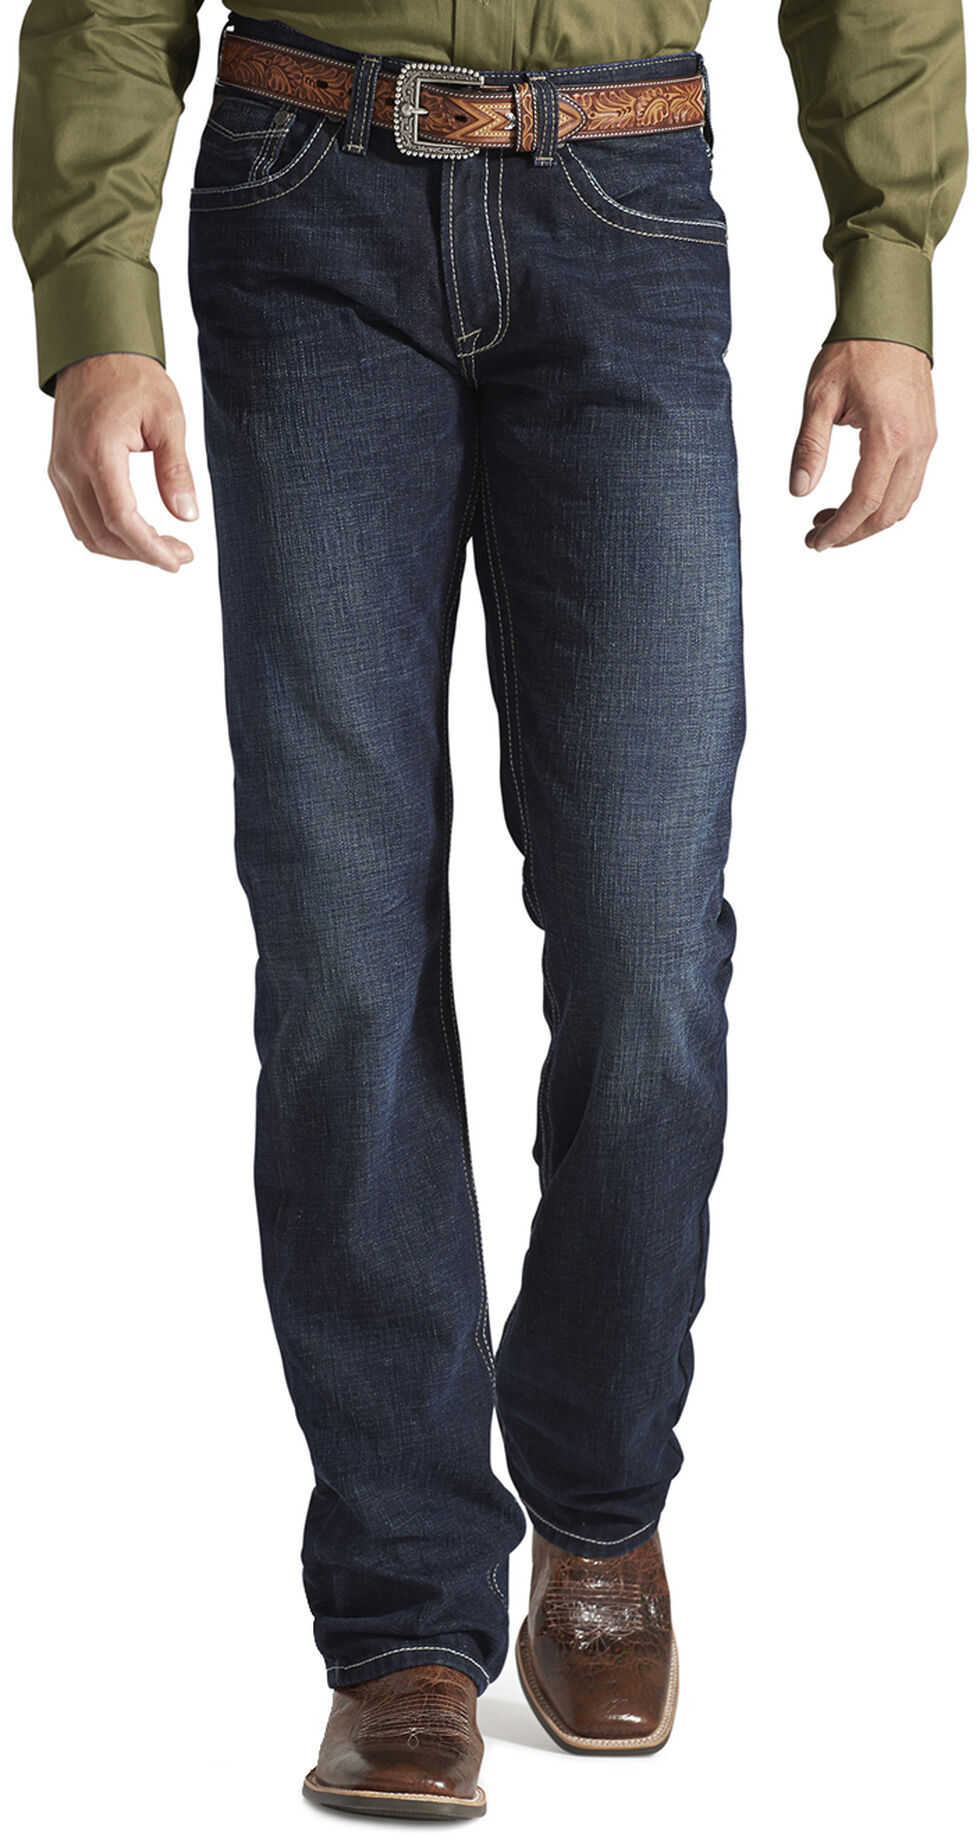 Ariat Denim Jeans - M5 Roadhouse Relaxed Fit, Med Wash, hi-res